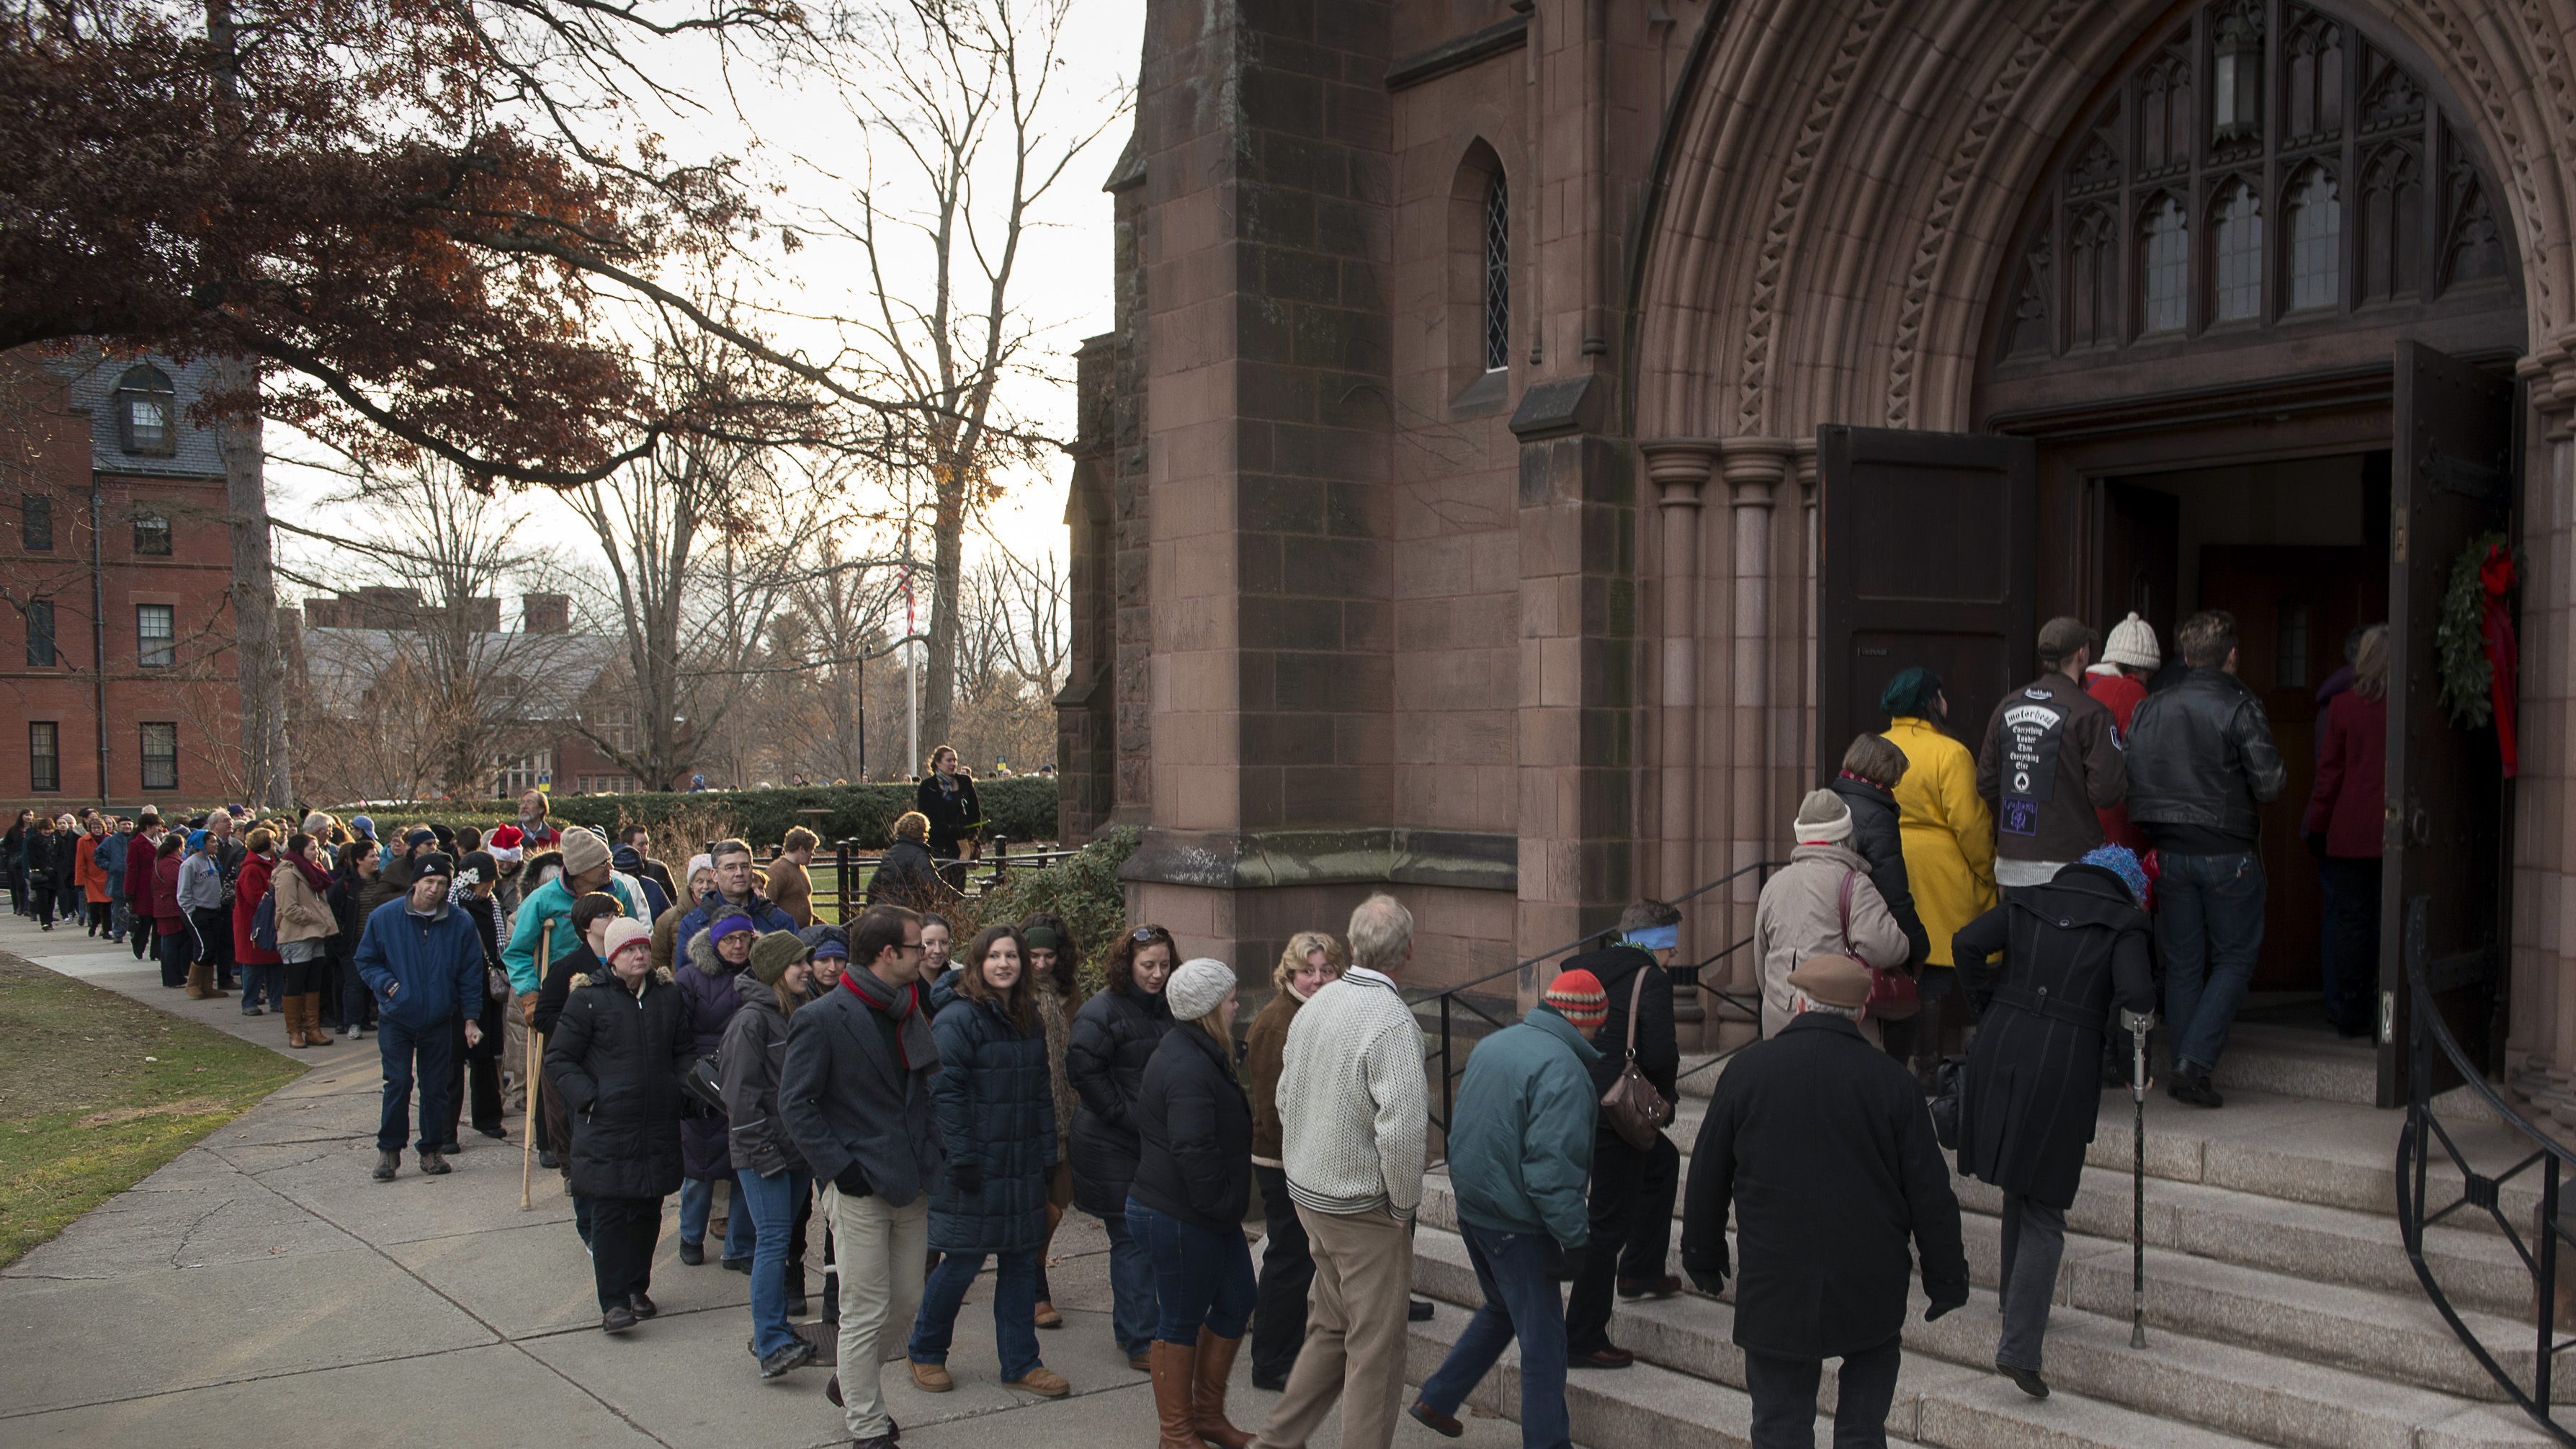 The crowd arrives at Abbey Chapel